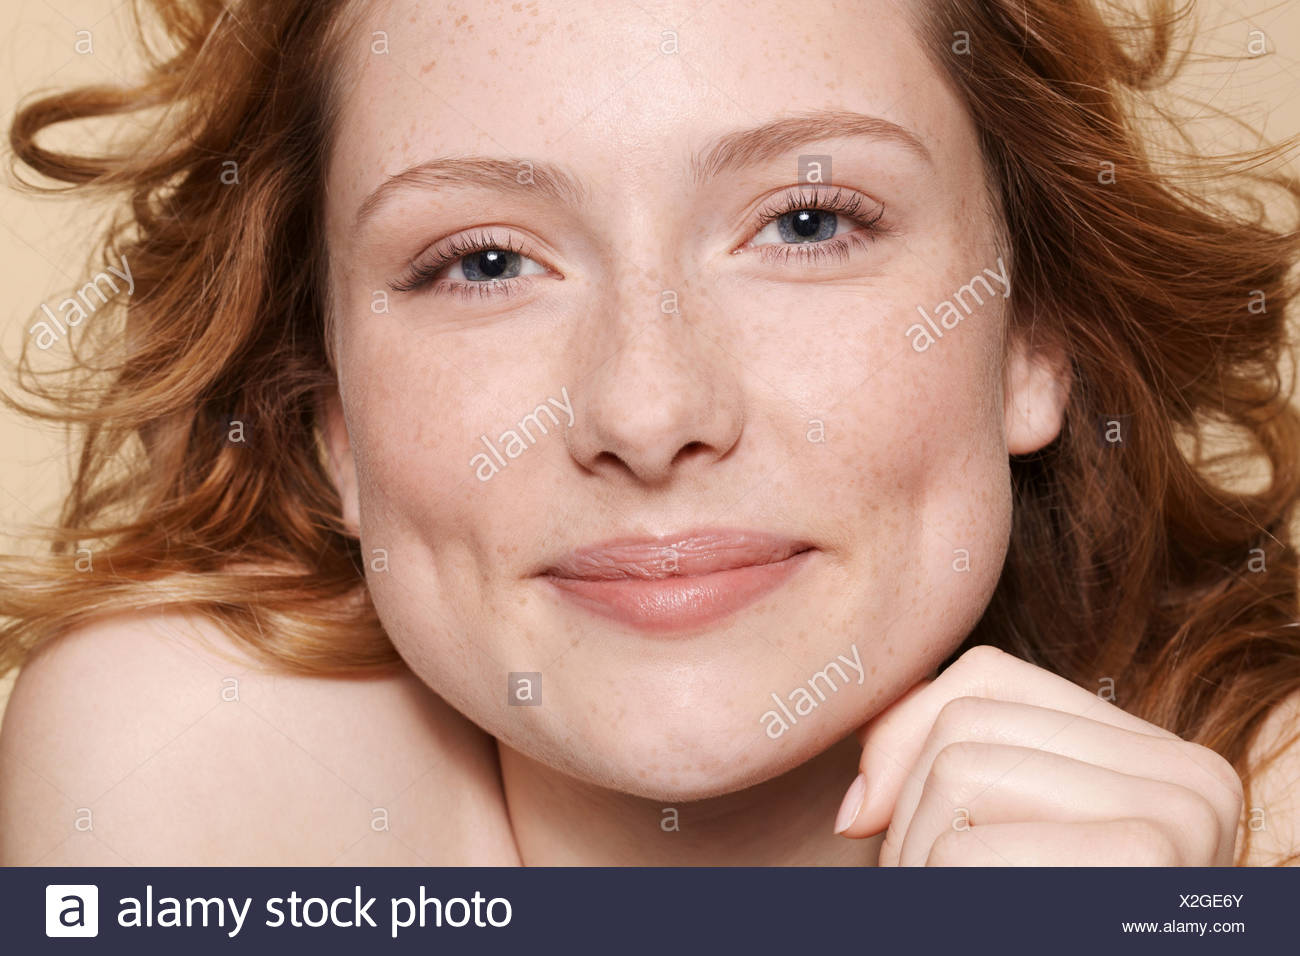 Studio shot of young woman with curly red hair, hand on chin - Stock Image